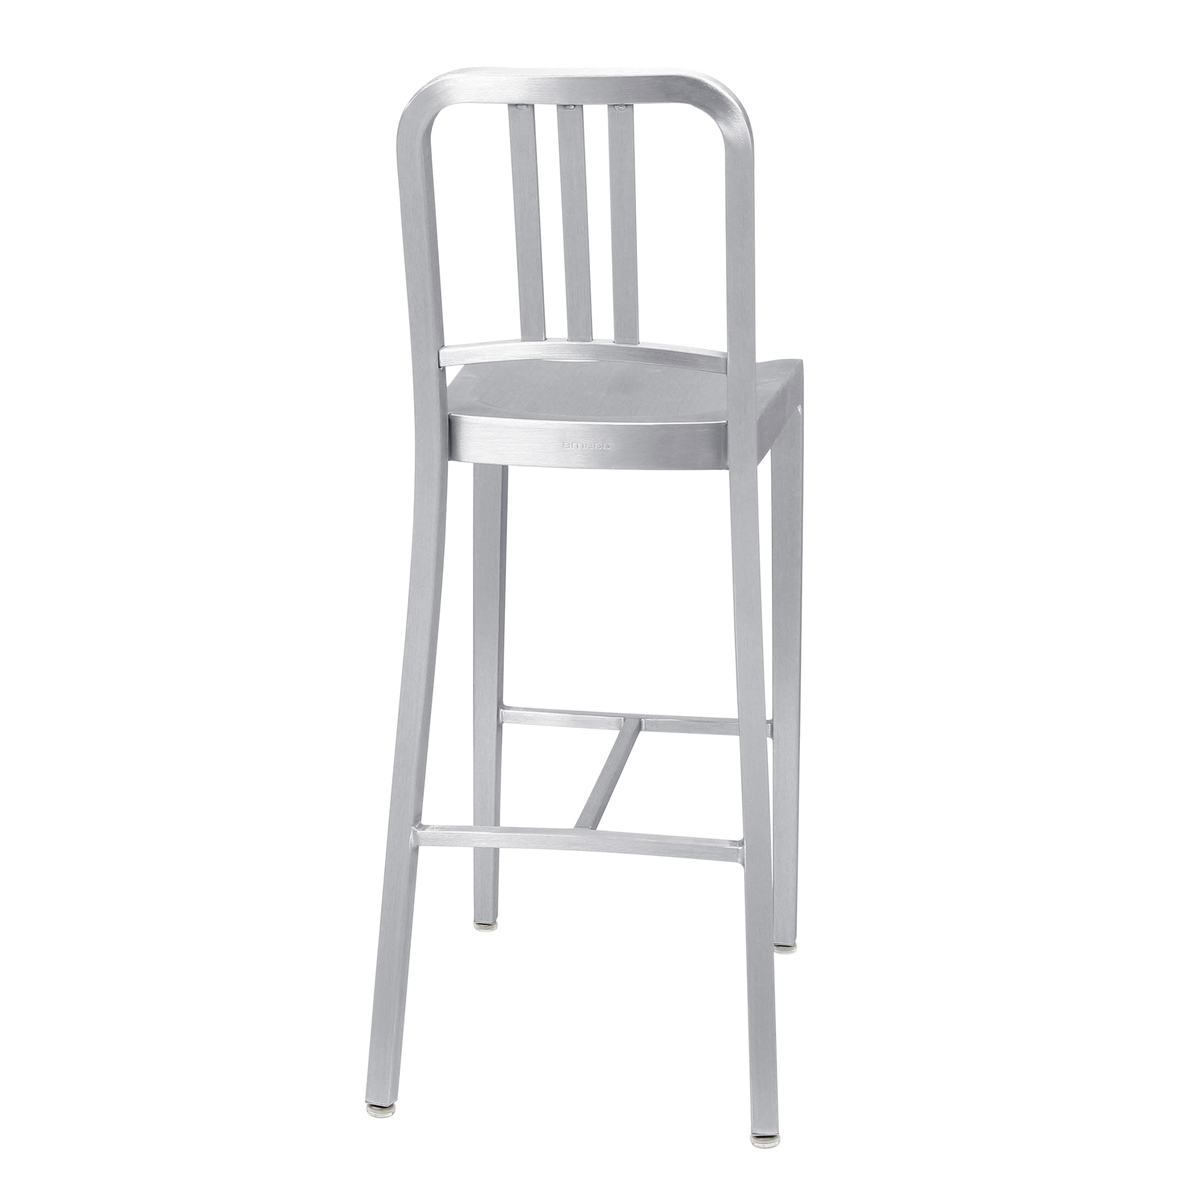 navy chair stool bent wood chairs barstool